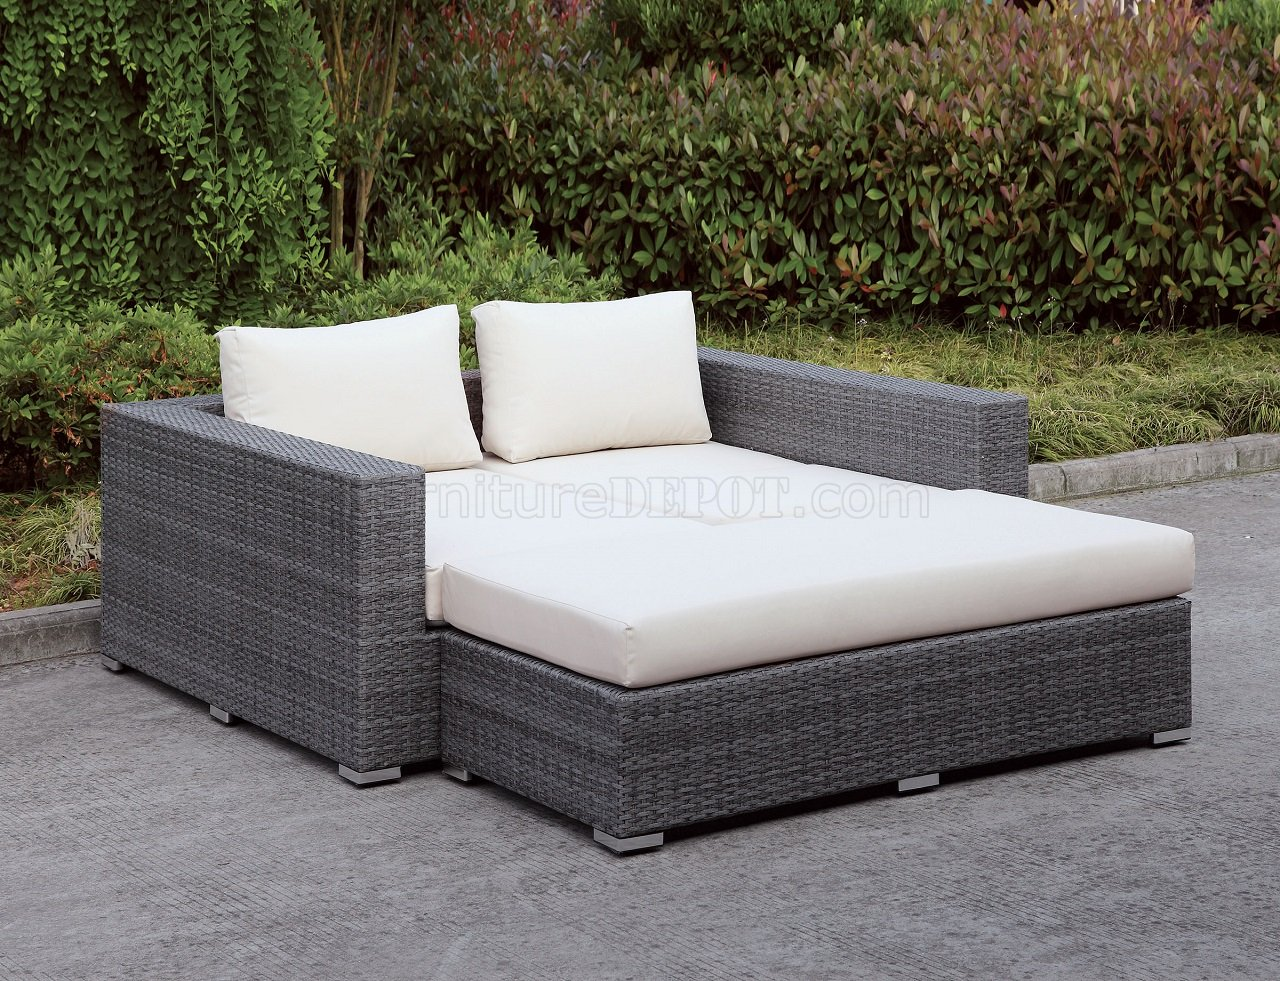 Outdoor Daybeds For Sale Cheap Patio Daybeds Prepossessing Outdoor Patio Daybed